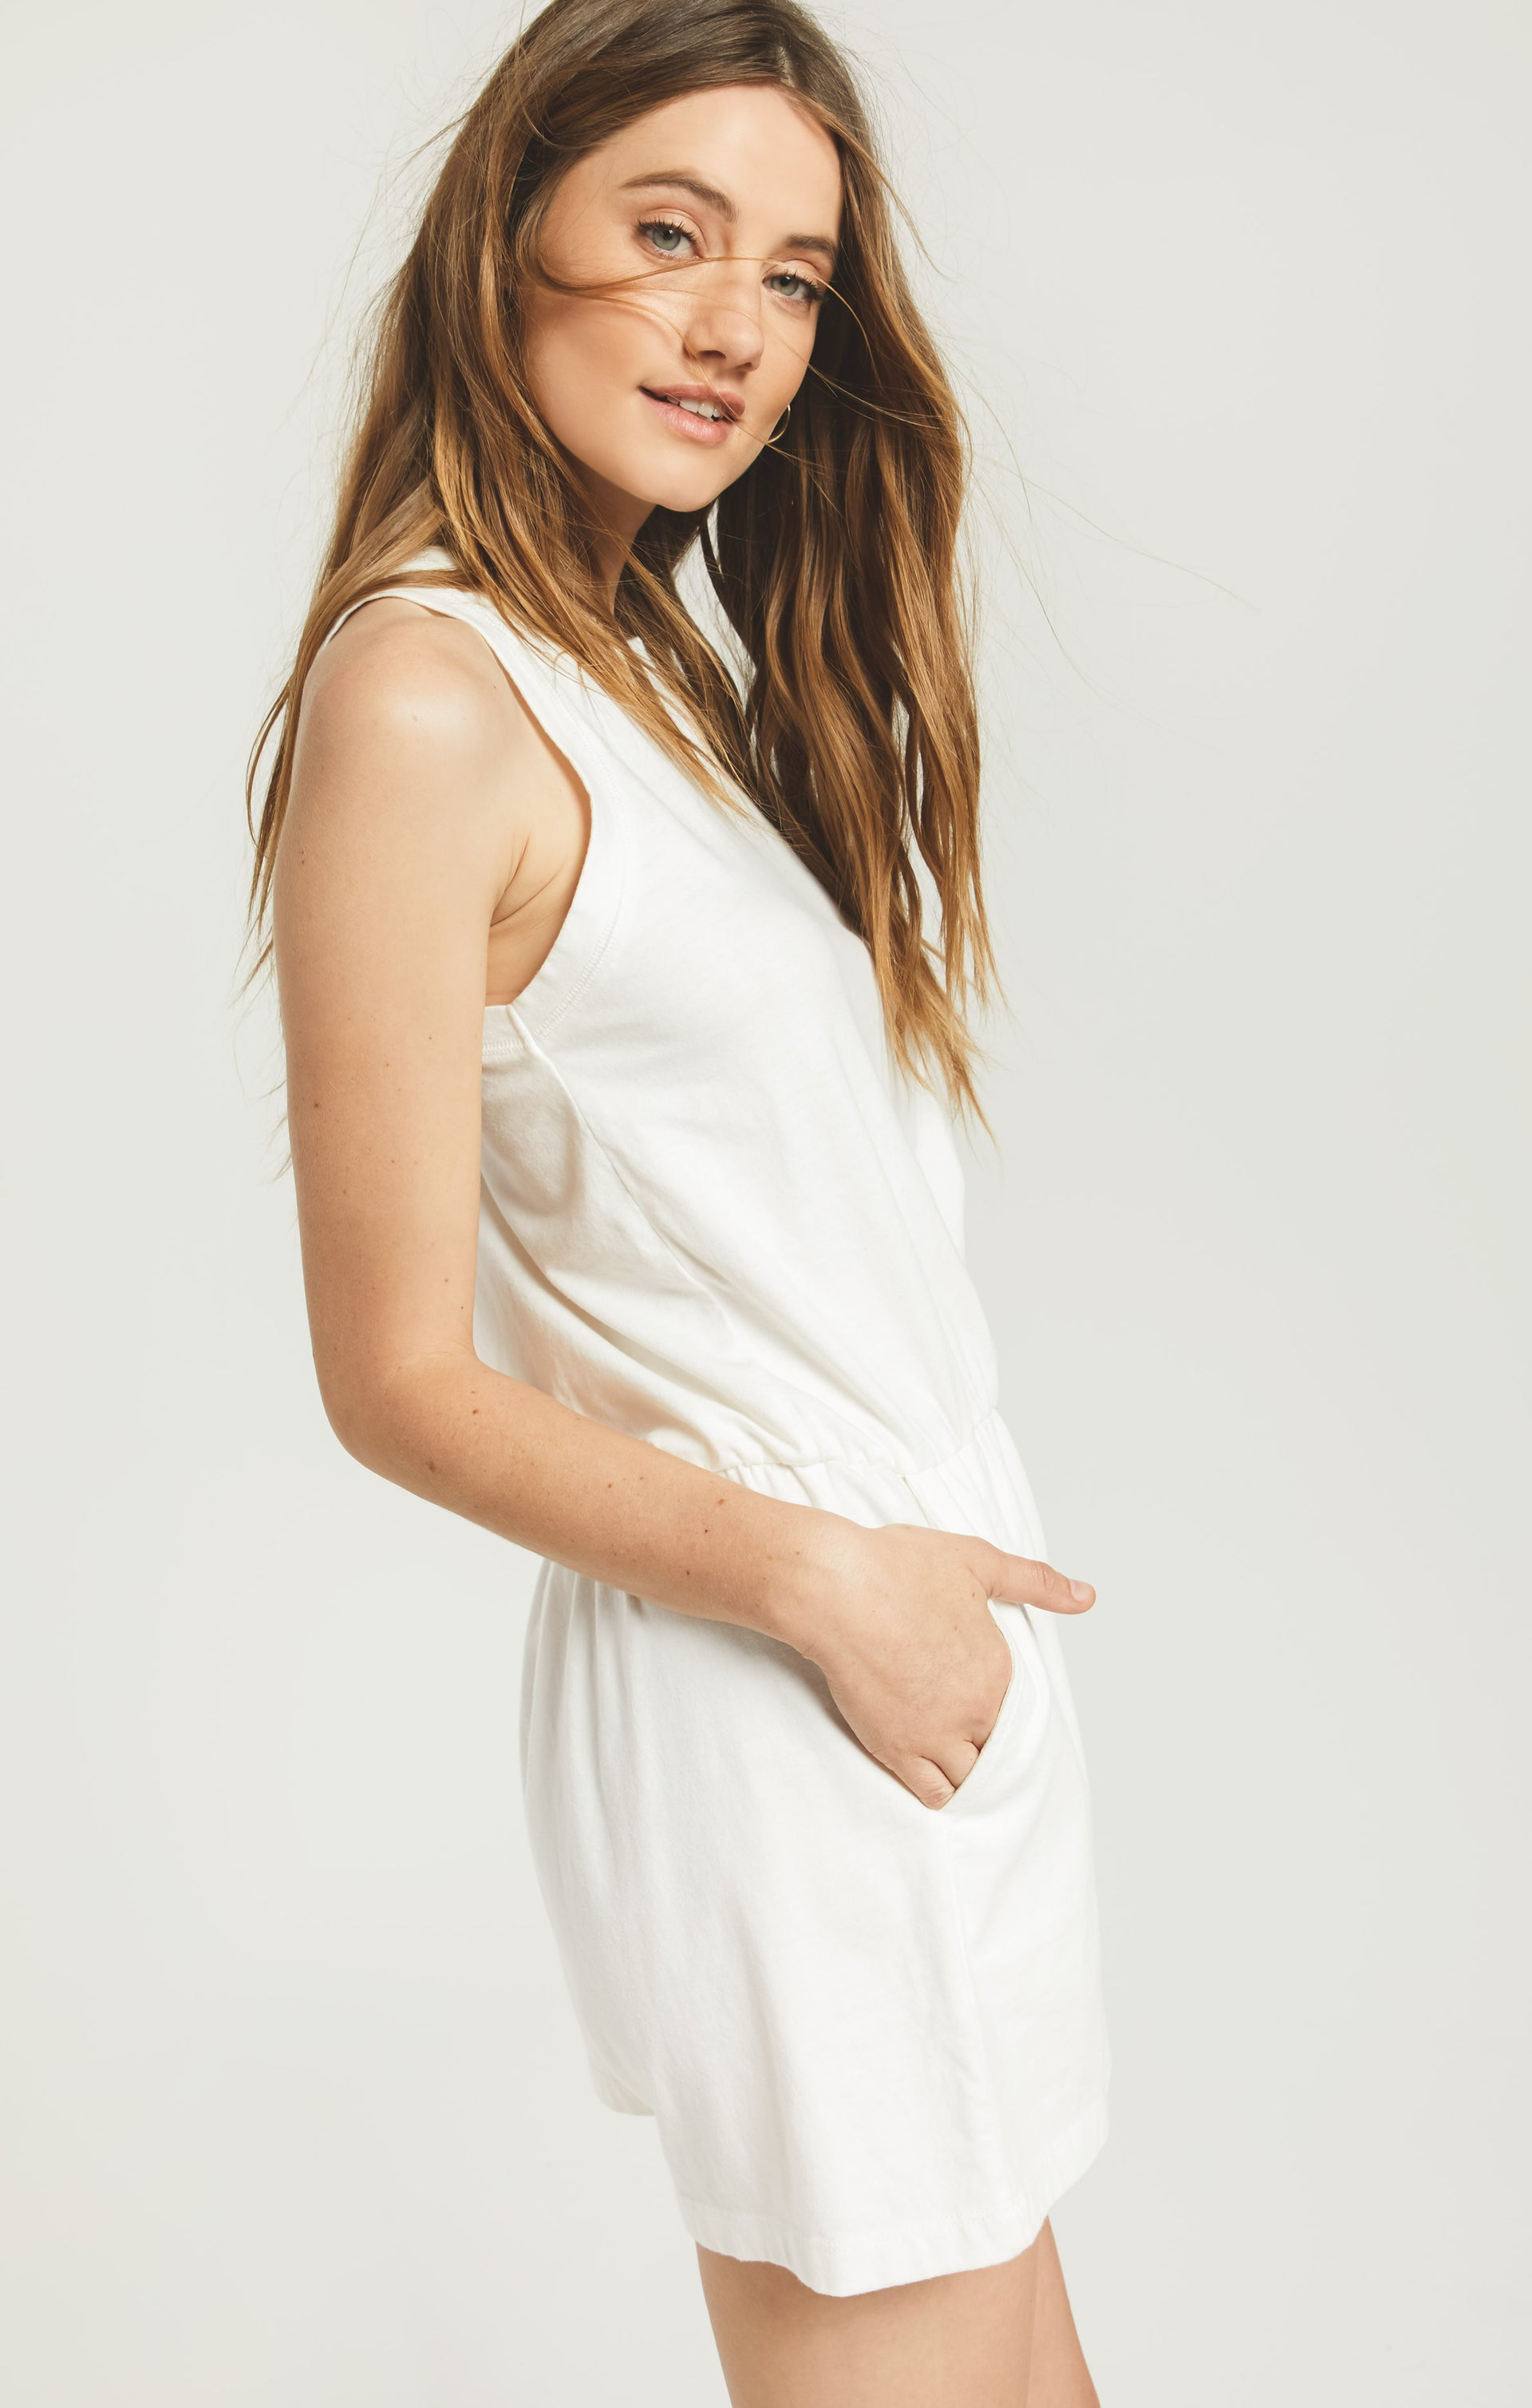 Shorts Adira Cotton Romper Adira Cotton Romper